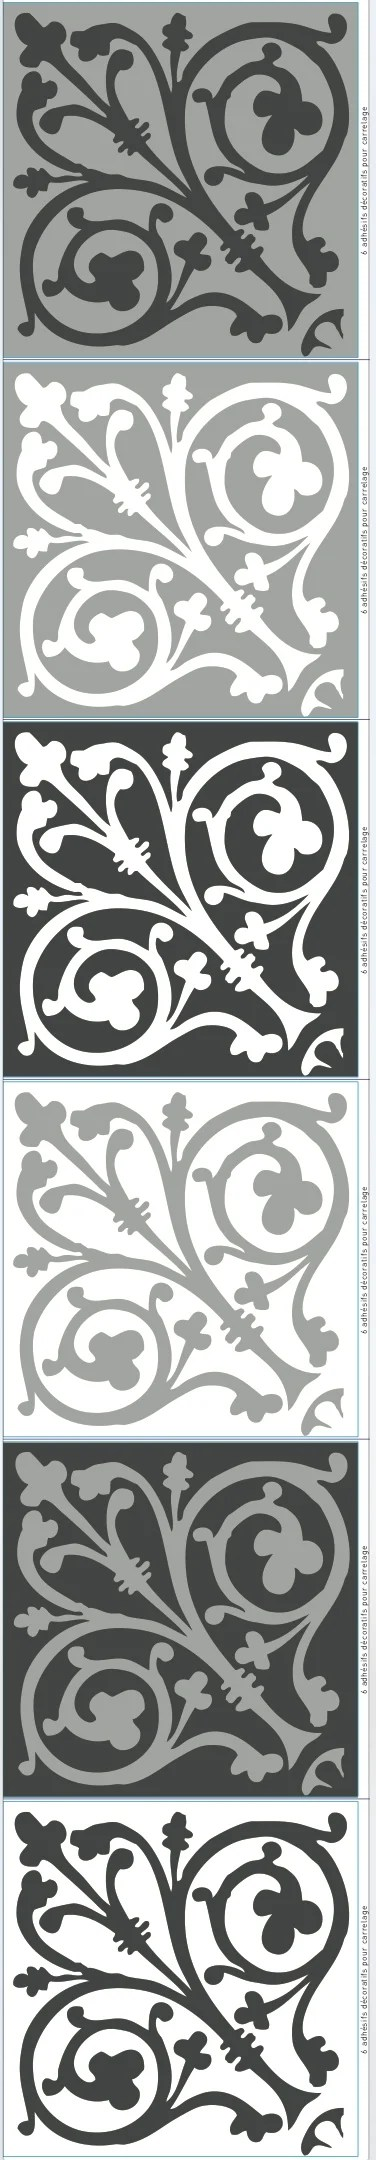 lot de 6 stickers adhesifs carrelage mural carreaux de ciment baroq 15 cm x 15 c